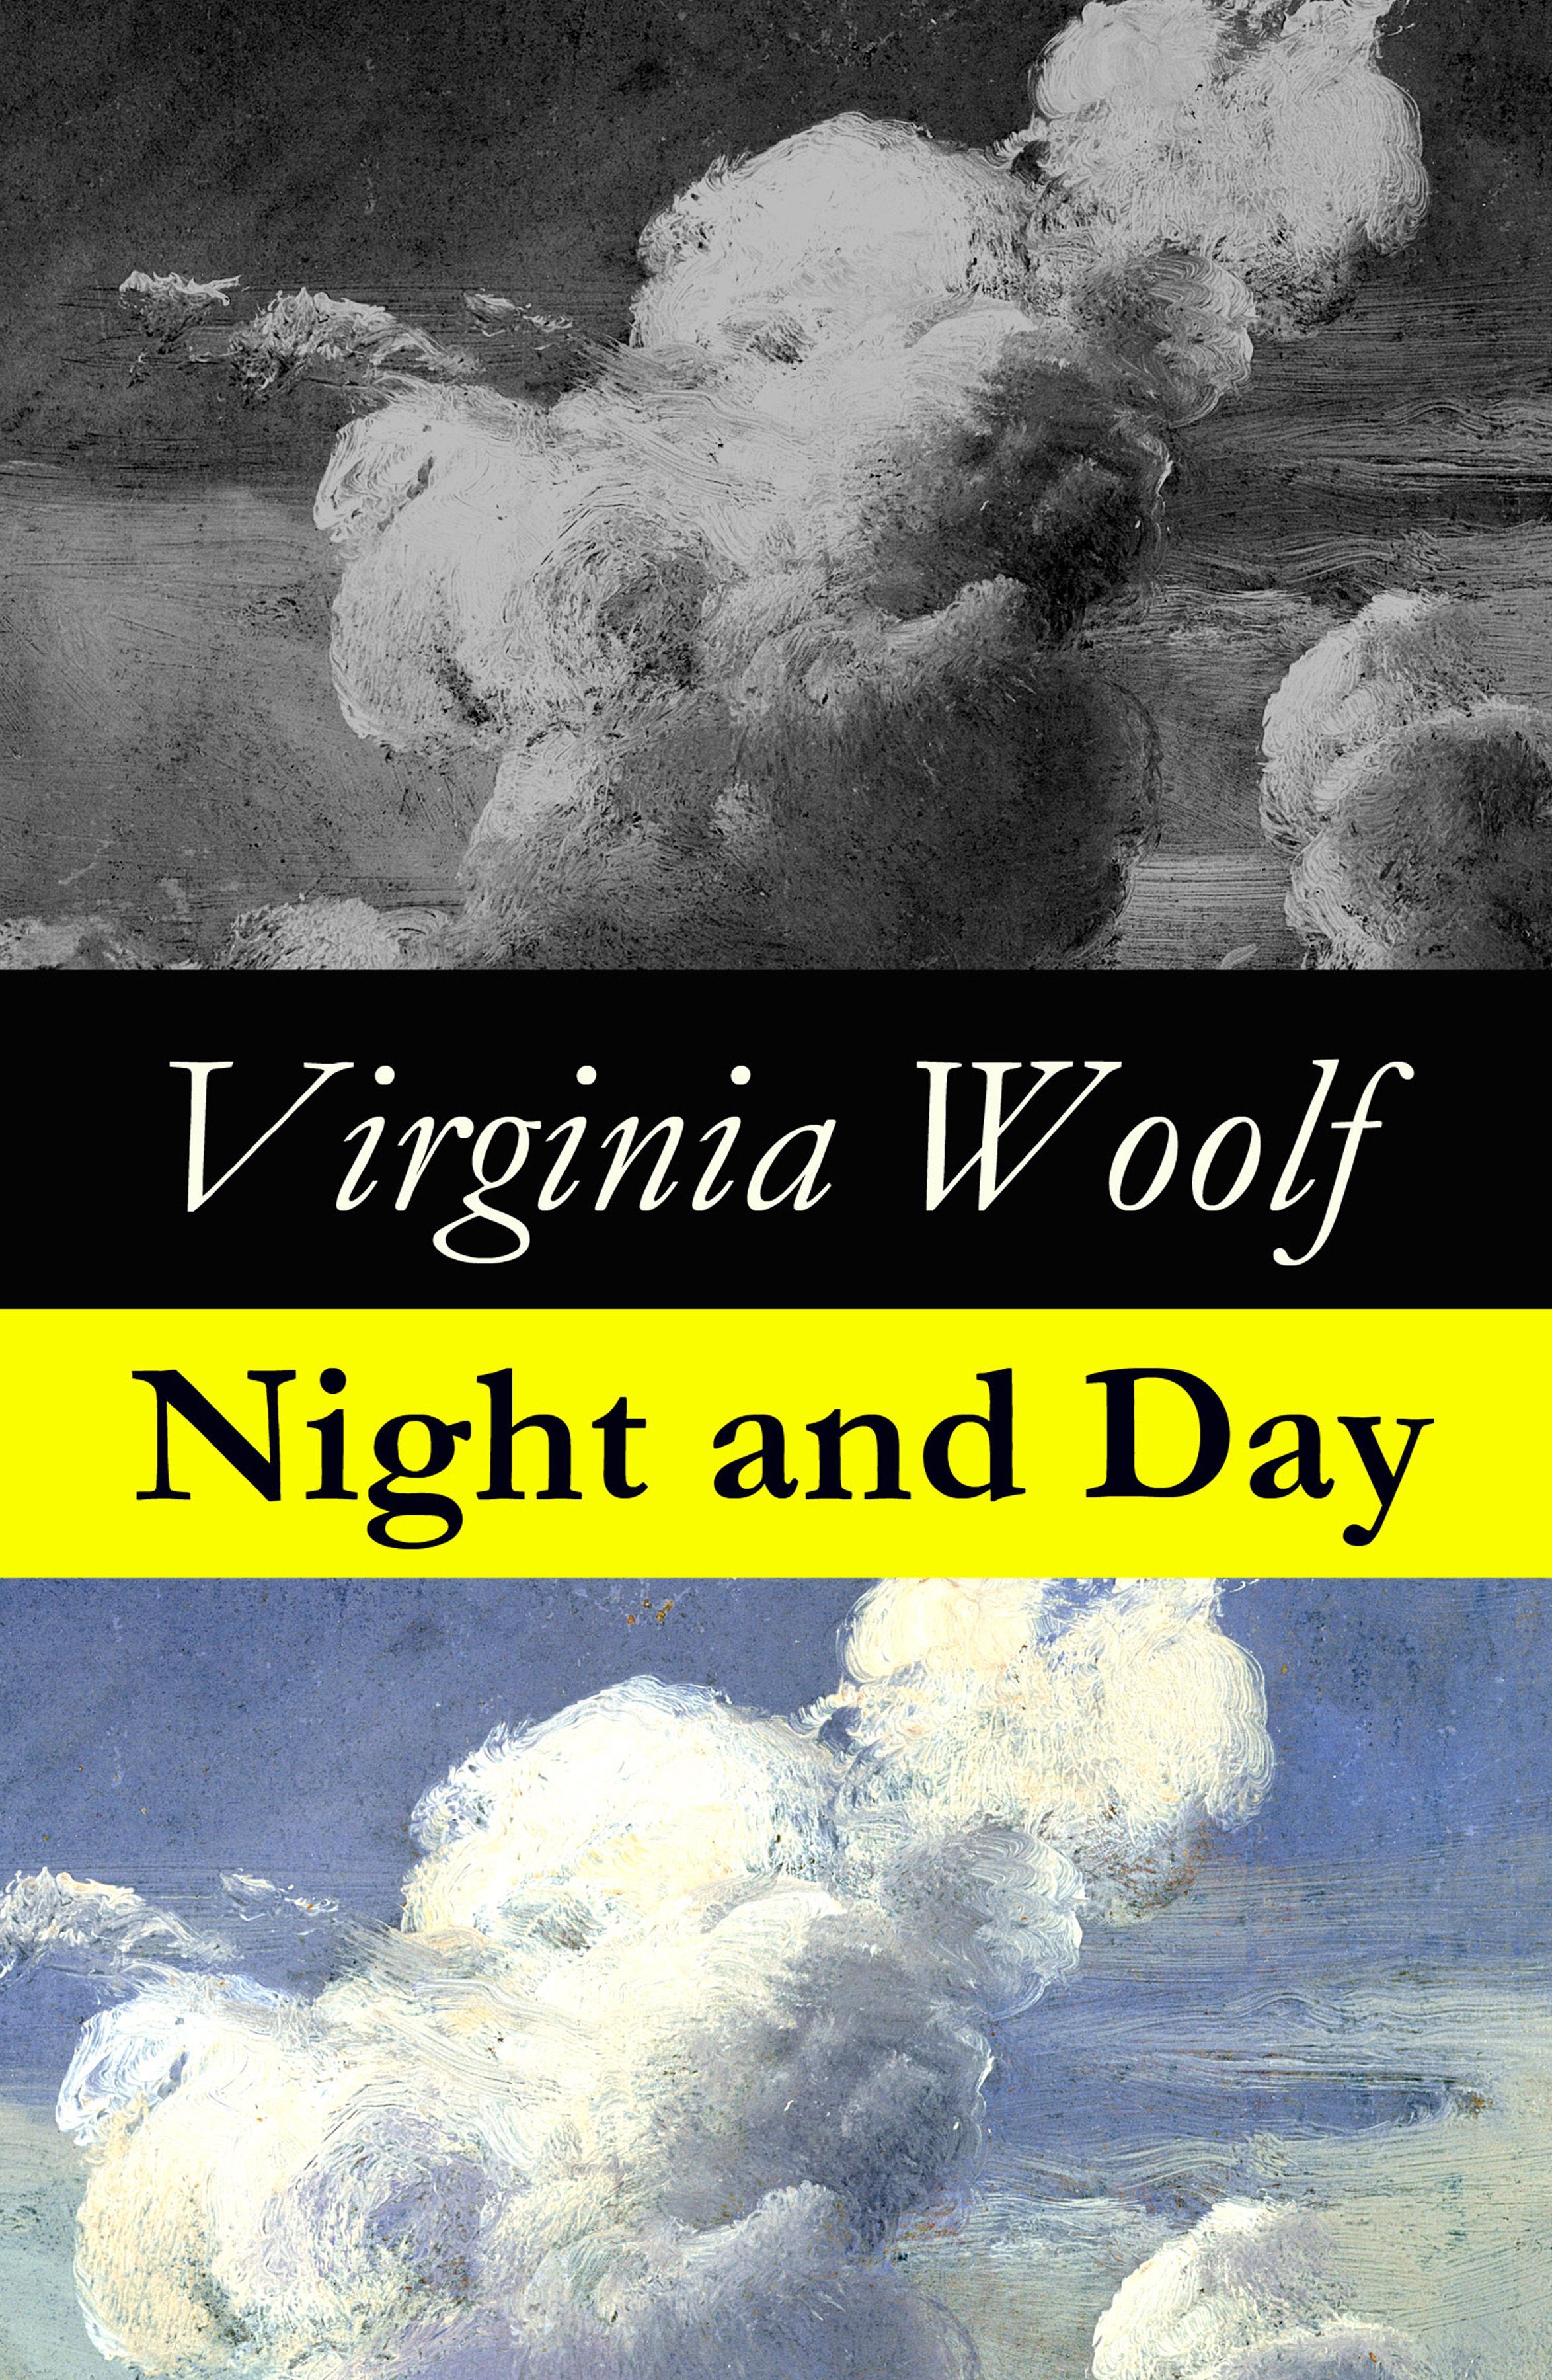 Virginia Woolf Night and Day (The Original 1919 Duckworth & Co., London Edition) woolf v night and day isbn 9785521057955